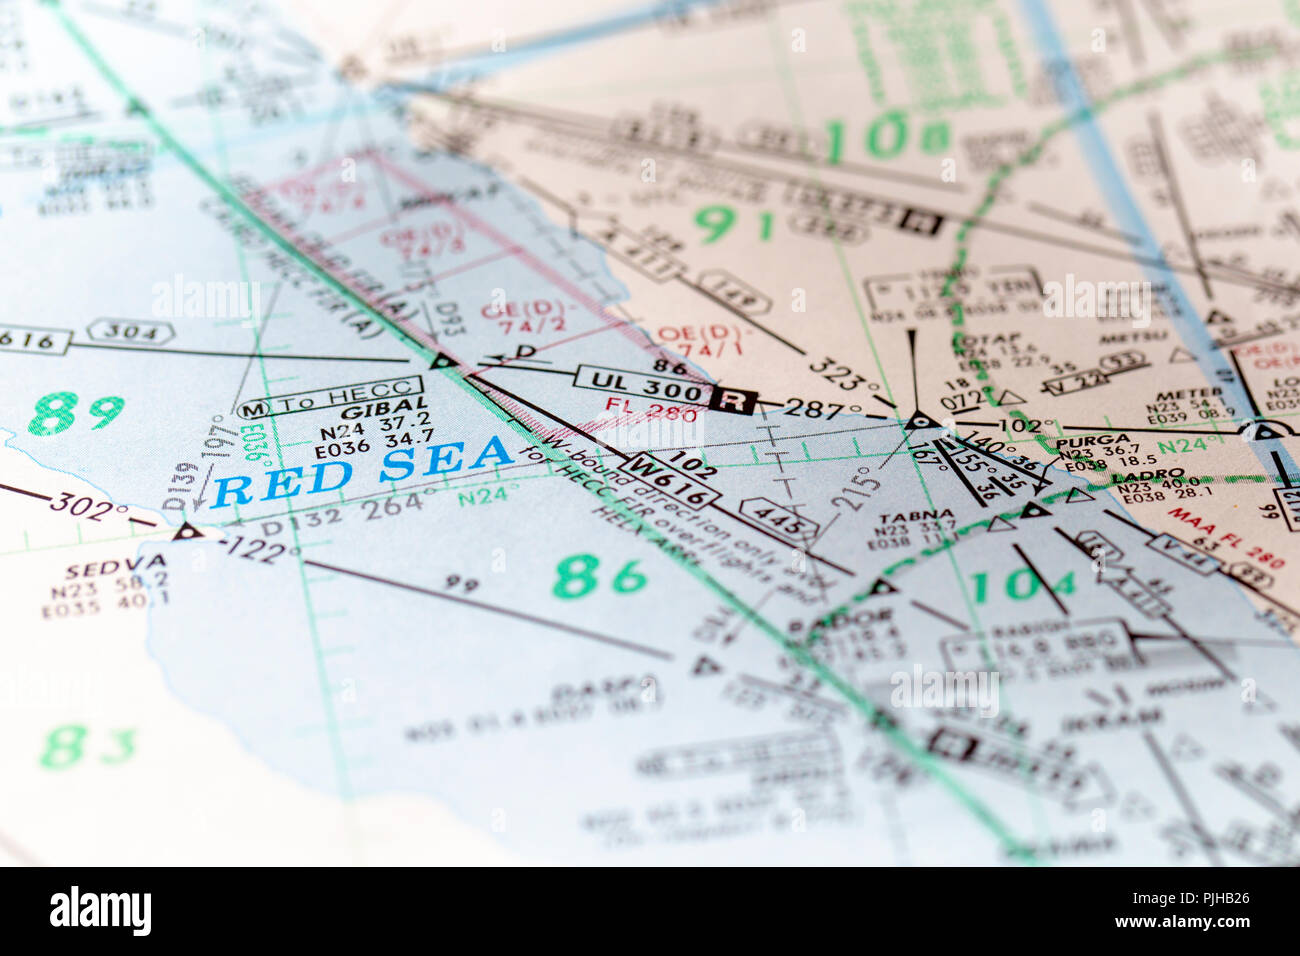 Detail of a commercial aviation pilot's flight map in the Middle East. - Stock Image